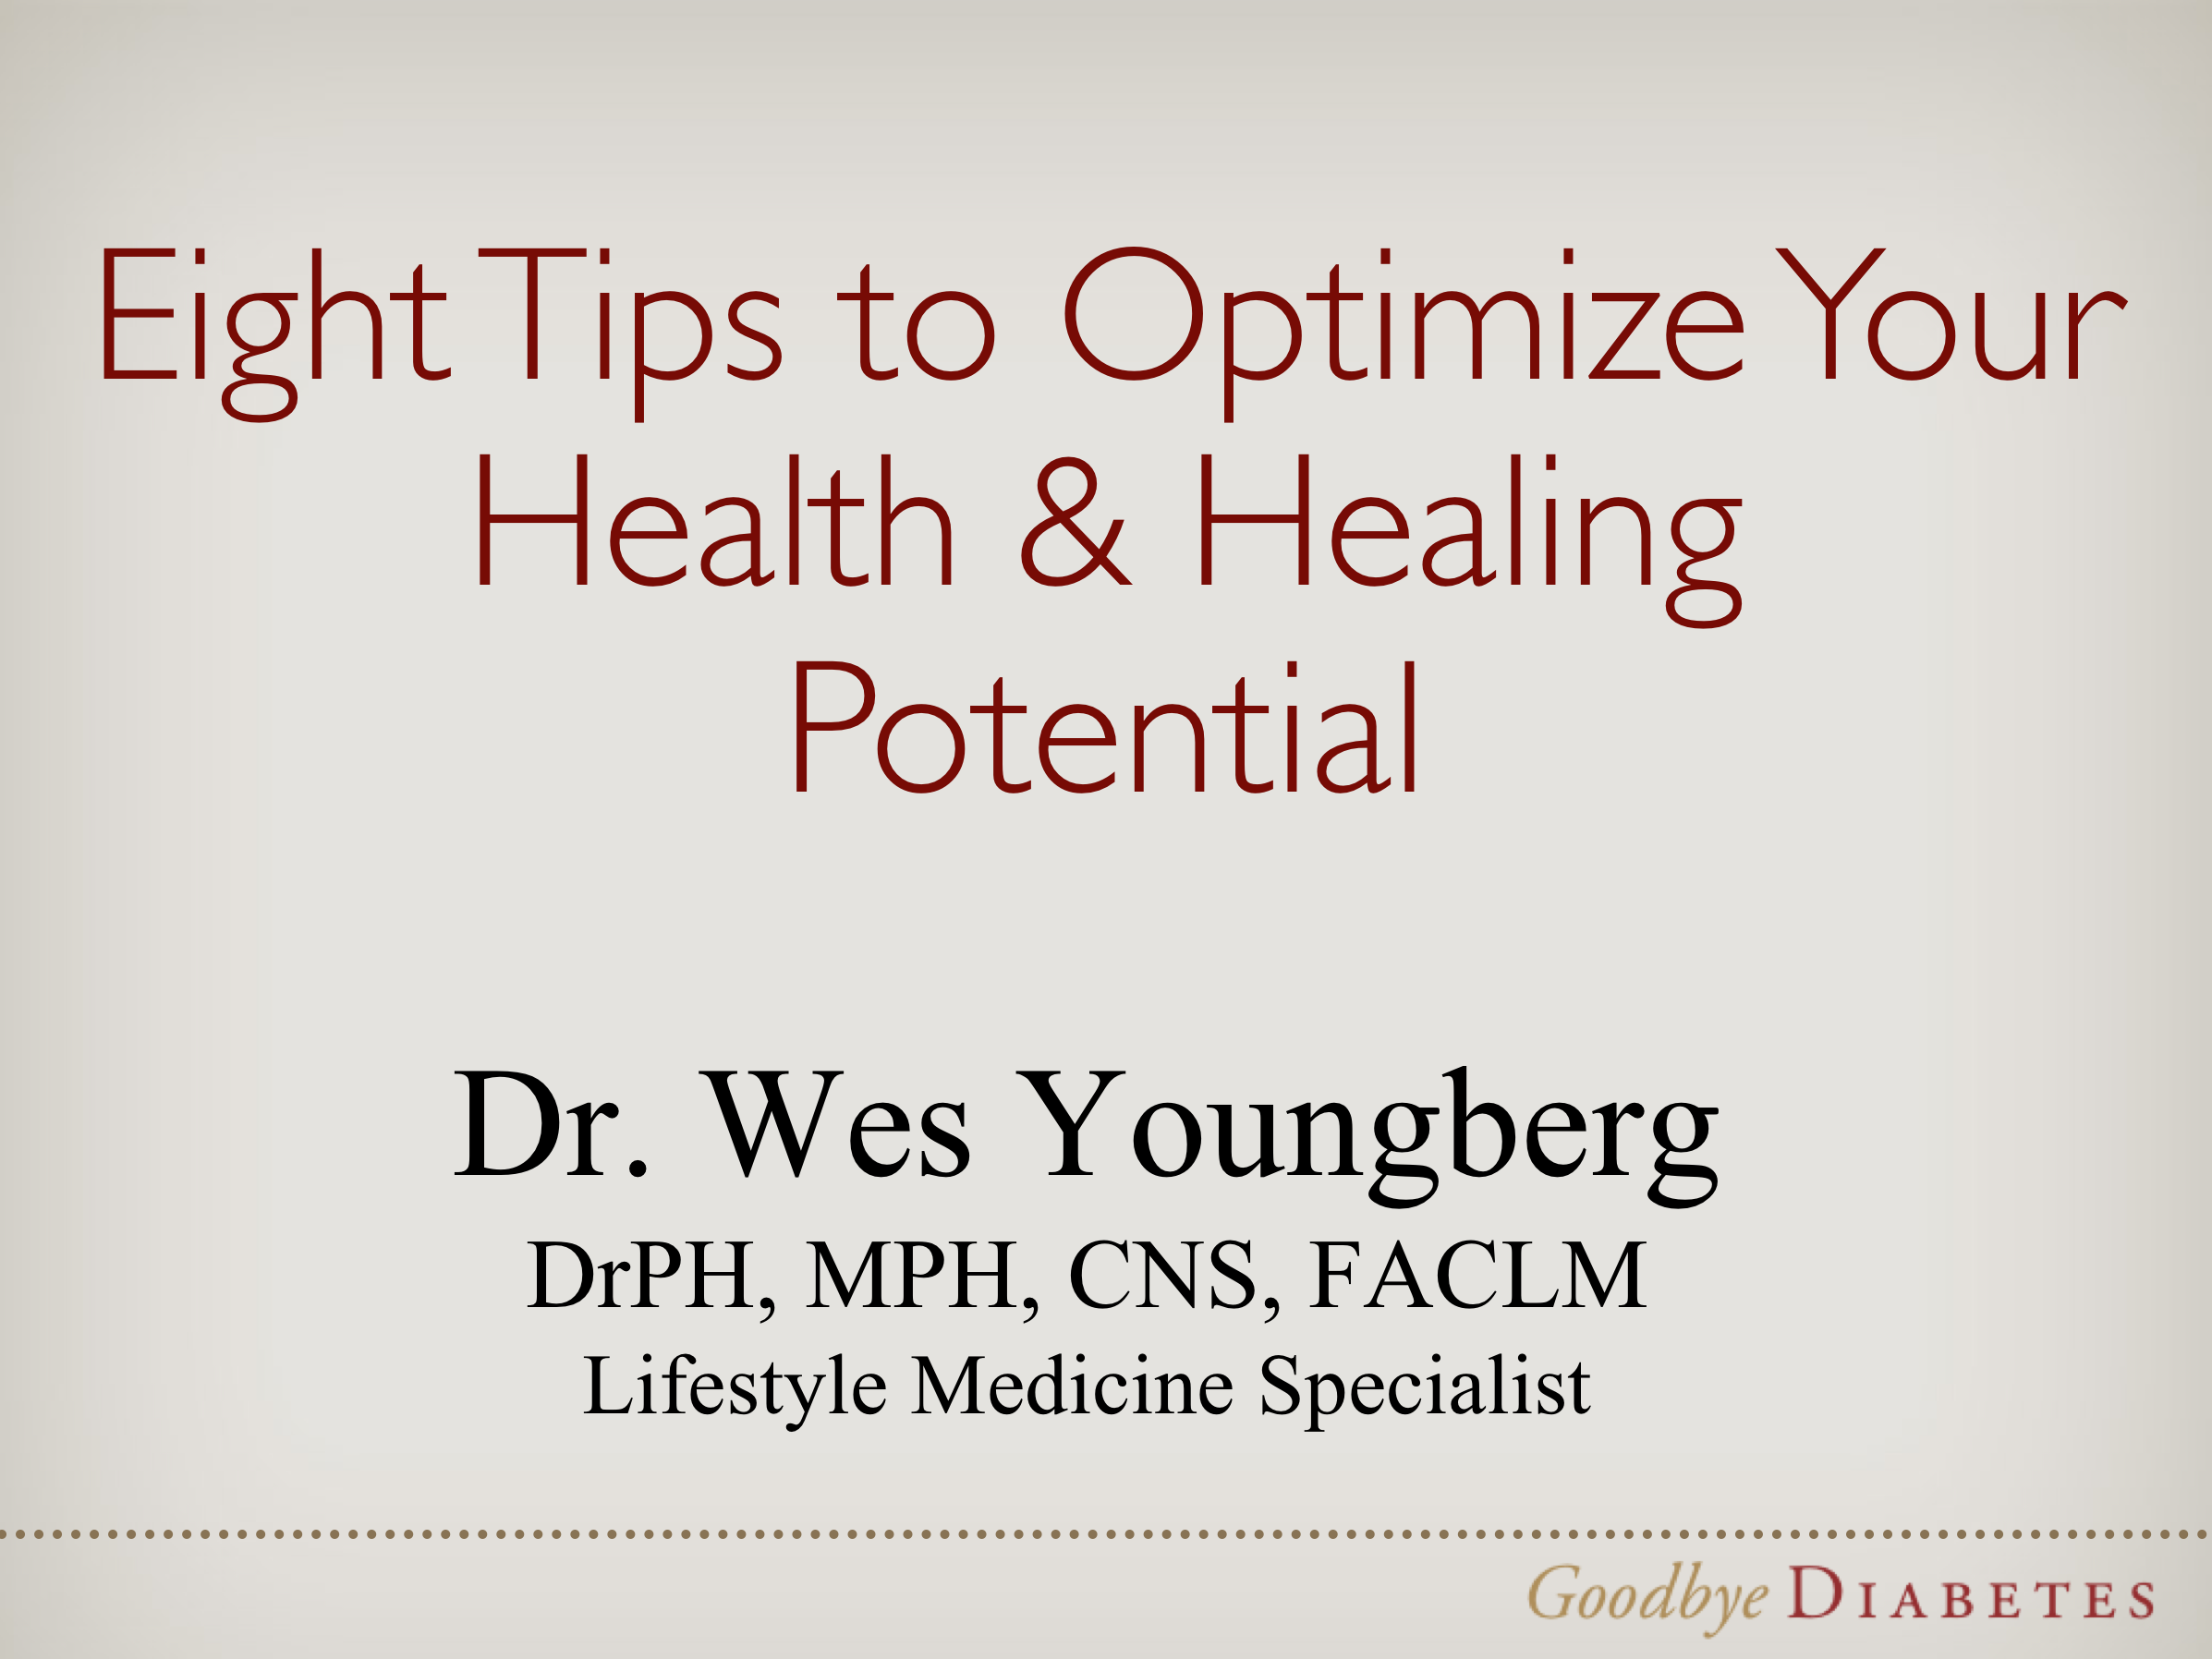 8-tips-to-optimize-health